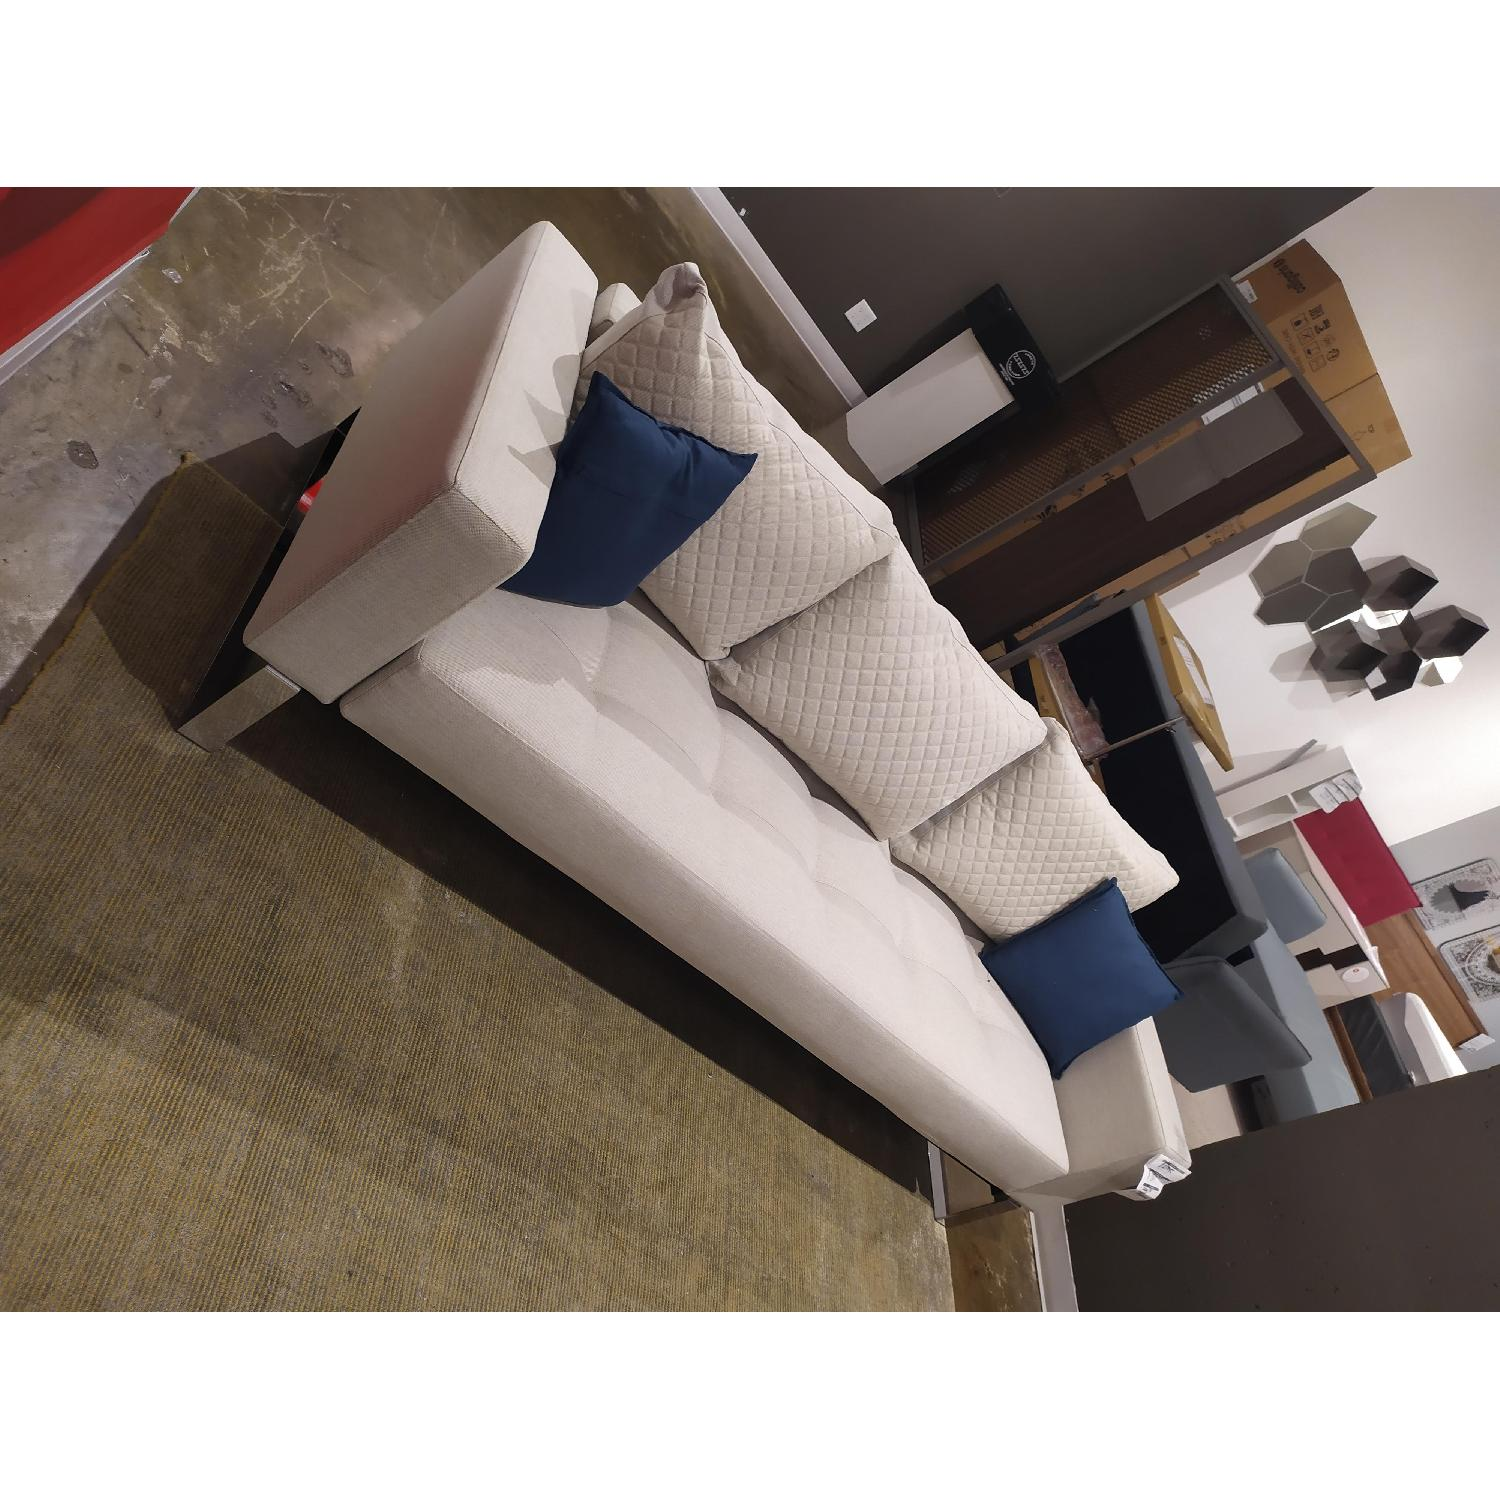 Innovation USA Cassius Quilt Deluxe Sleeper Sofa - image-1